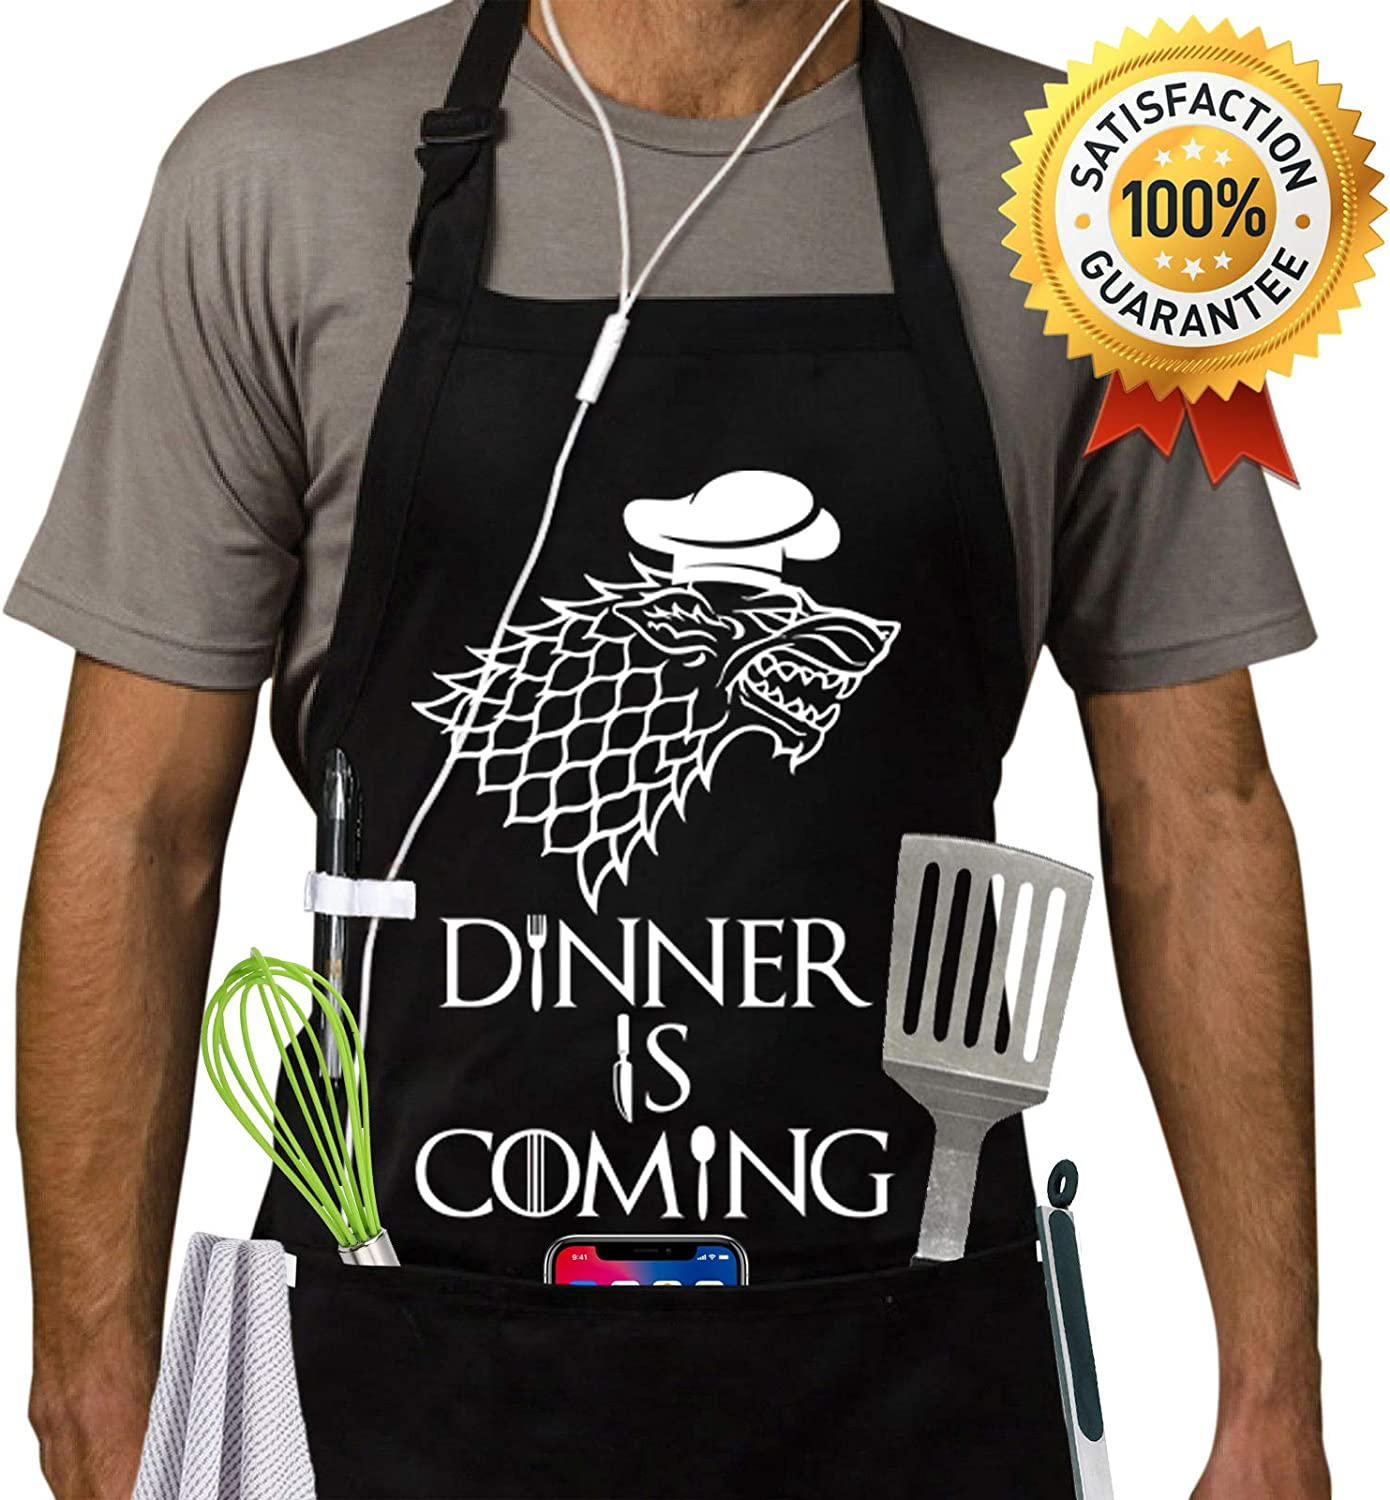 Awesome chef t shirt gift ideas for a chef kitchen utensils accessories BBQ